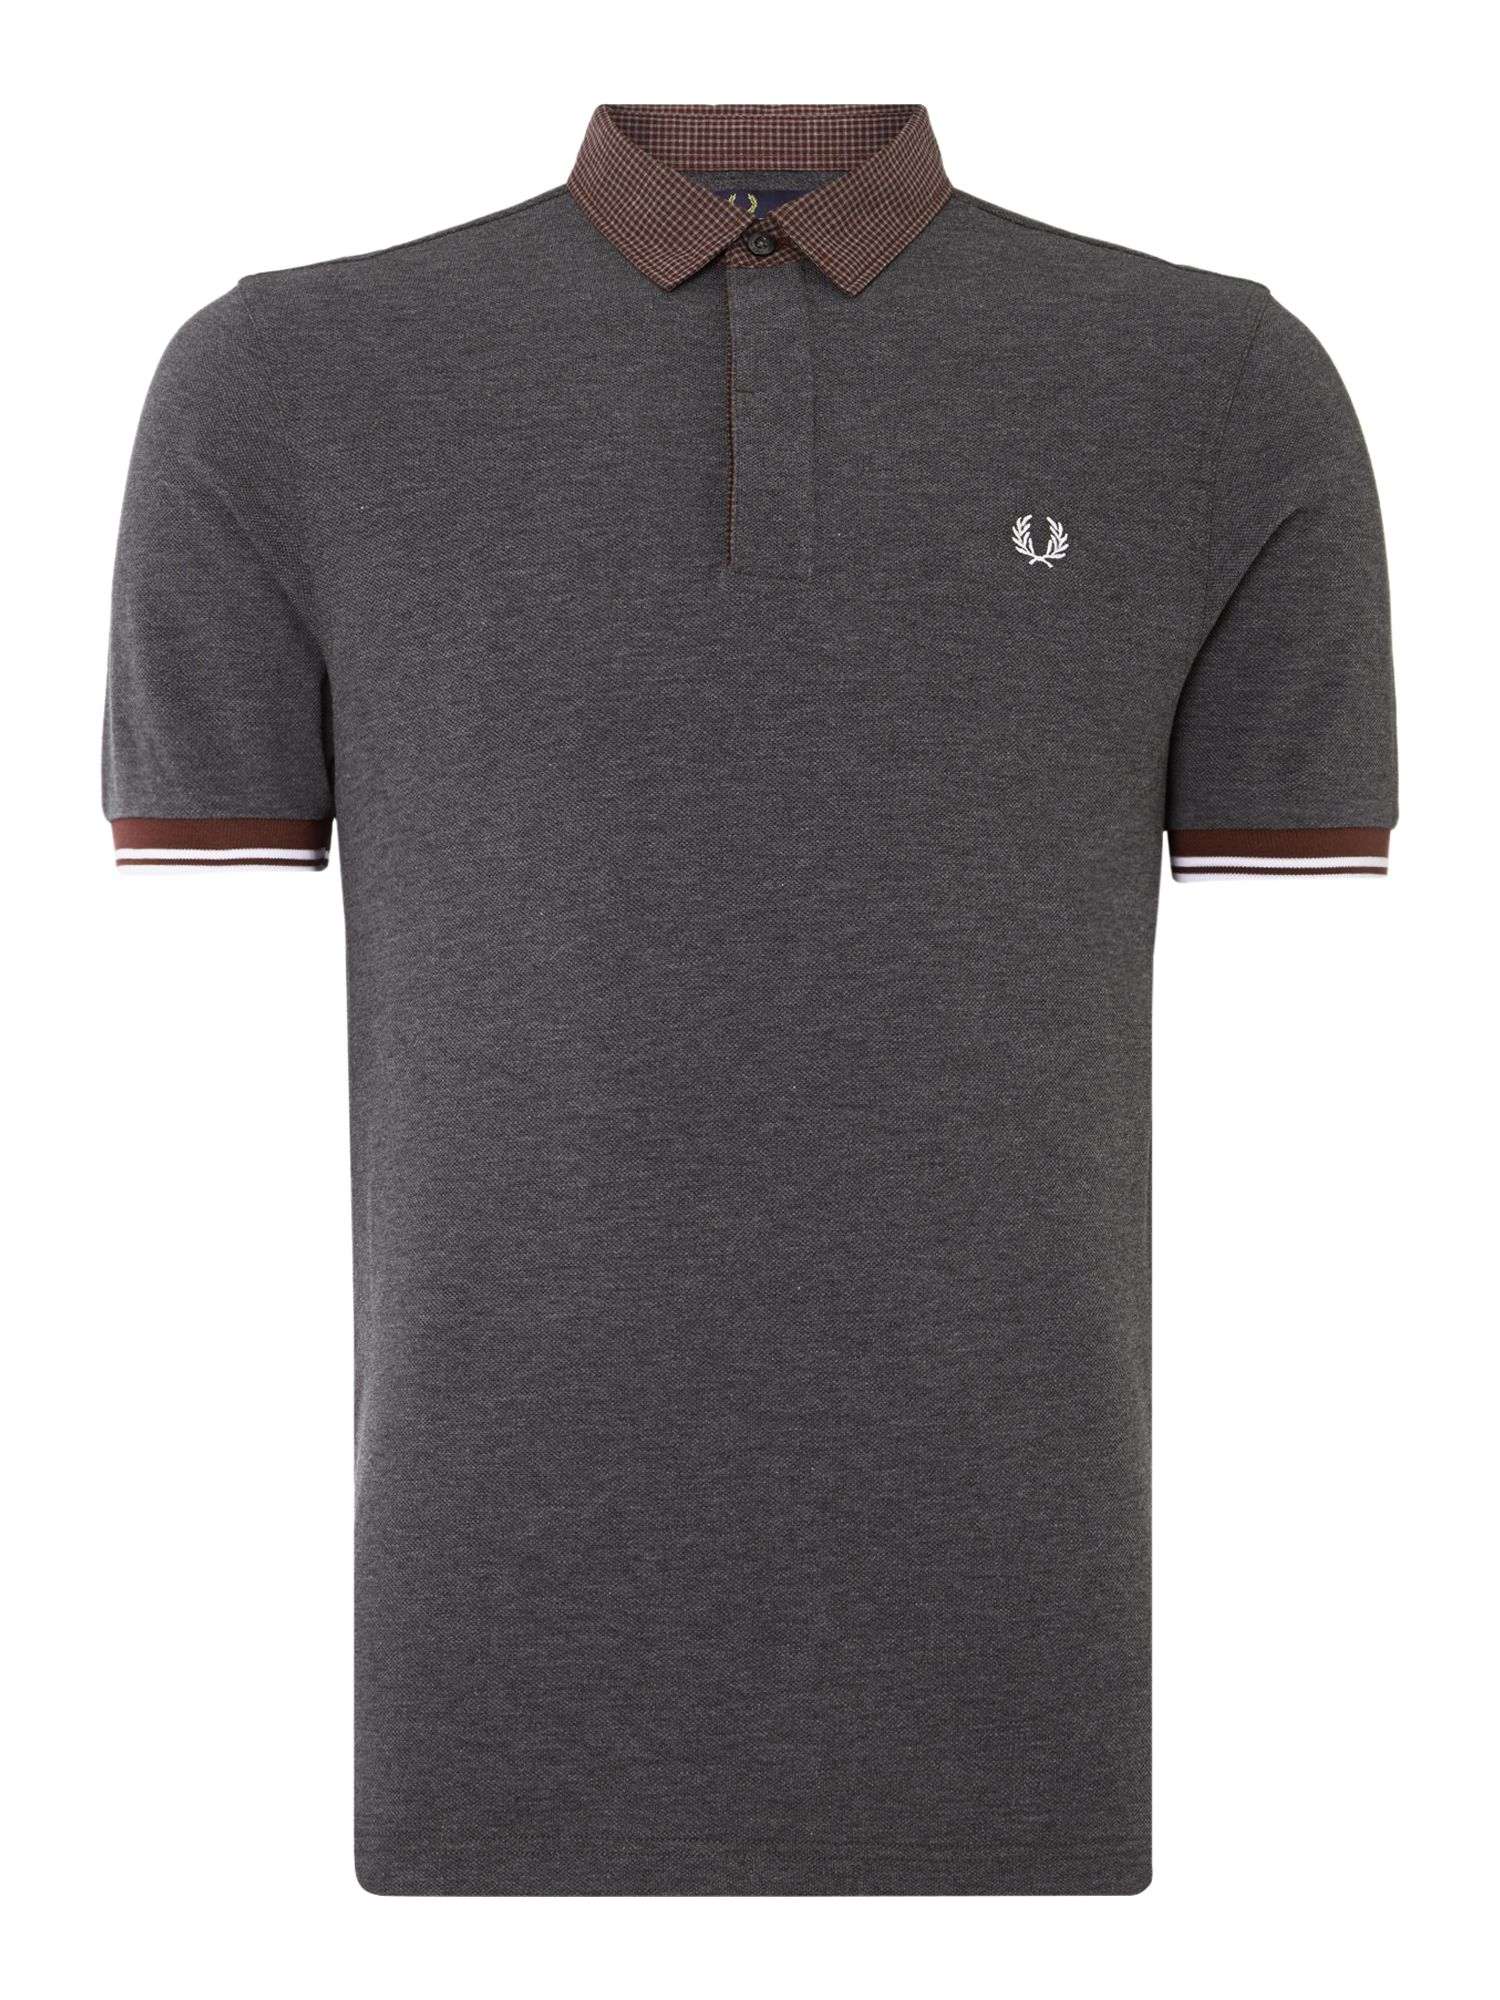 Mens Fred Perry Marl Gingham Trim Pique Polo Shirt Graphite